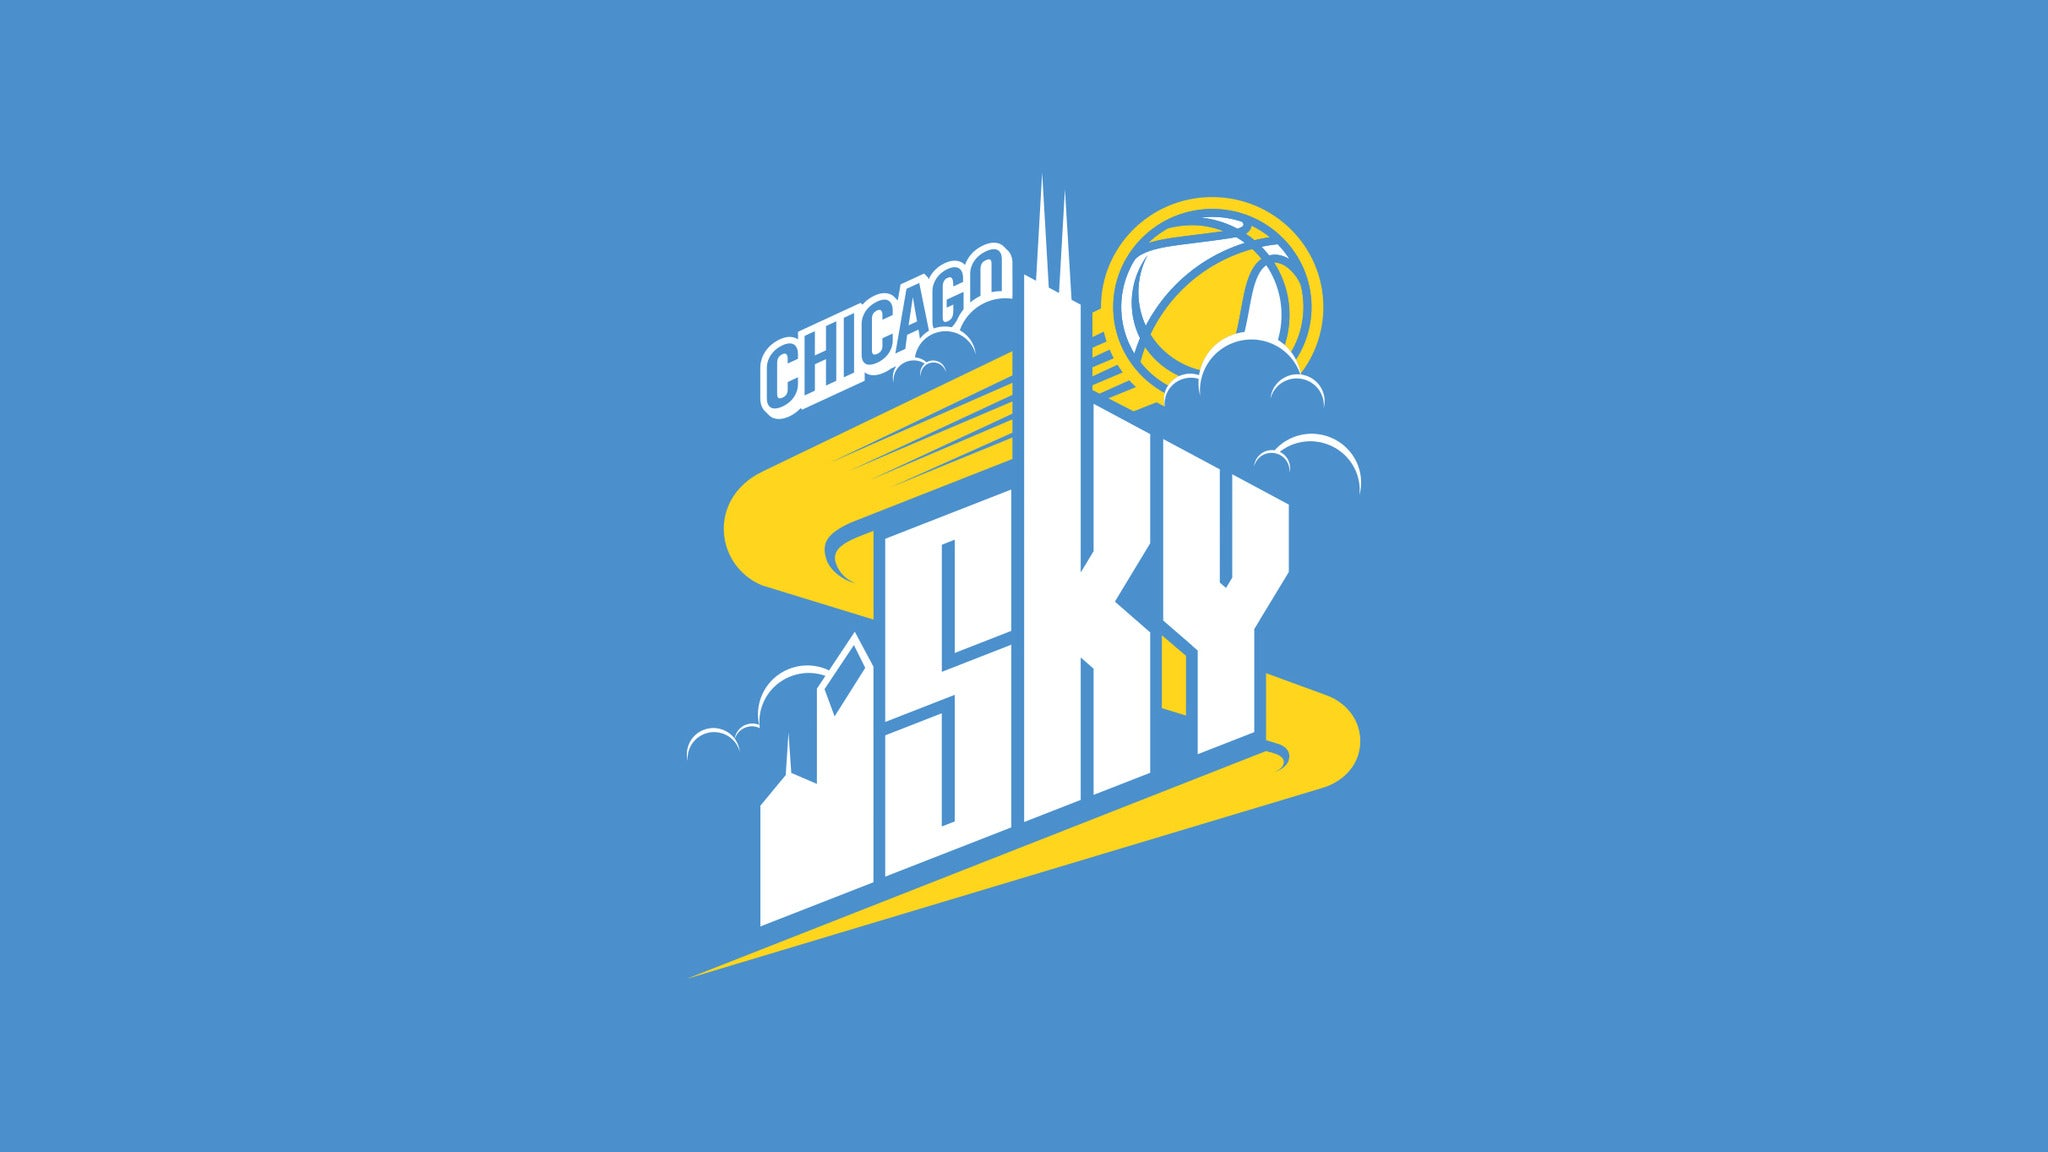 Chicago Sky vs. Washington Mystics at Wintrust Arena